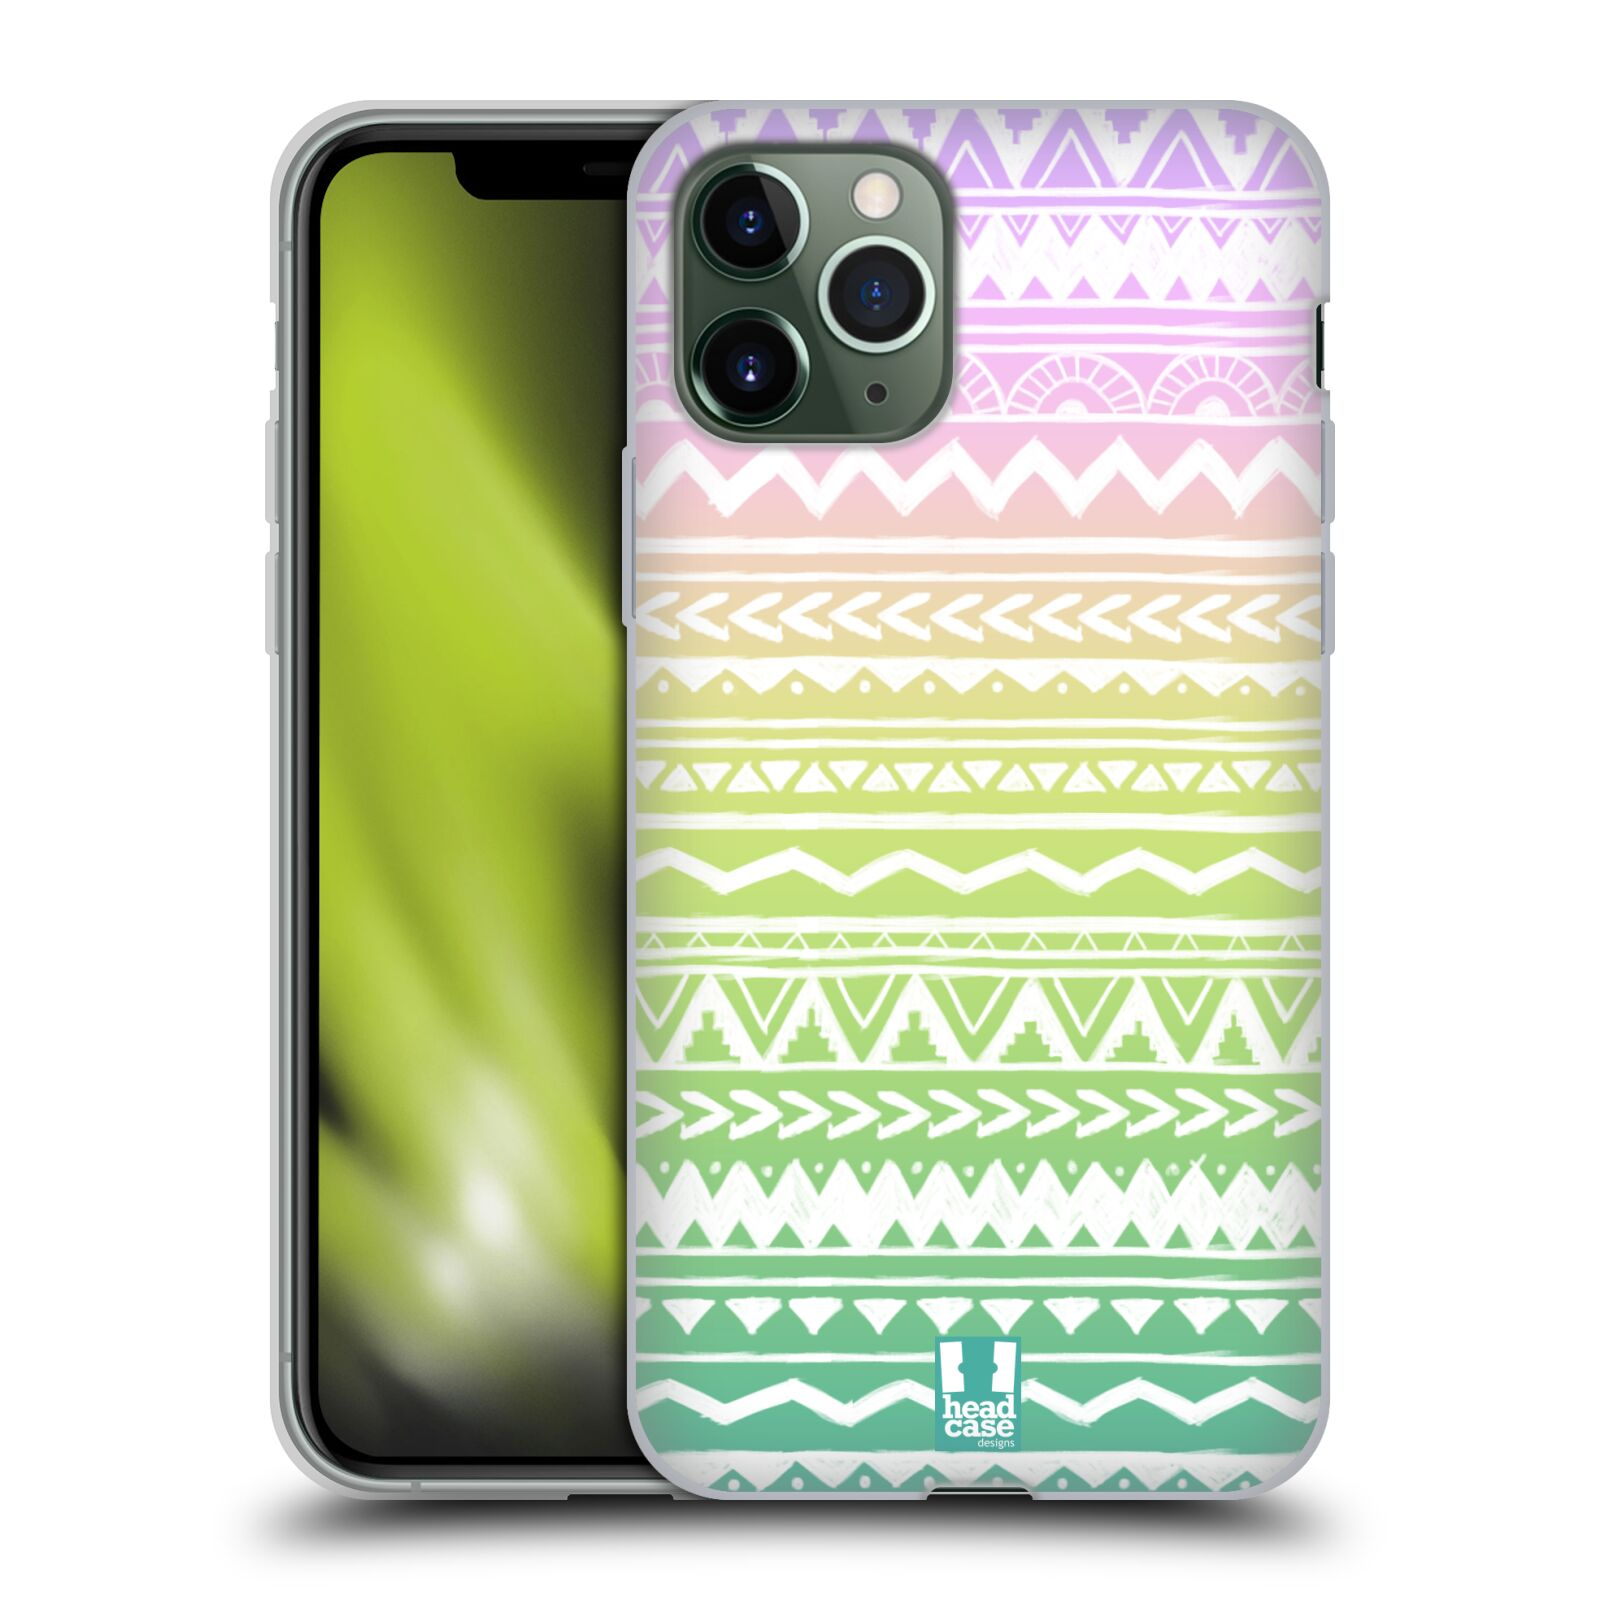 silikonový krytu na iphone 6s plus - Silikonové pouzdro na mobil Apple iPhone 11 Pro - Head Case - MIX AZTEC DRAWN